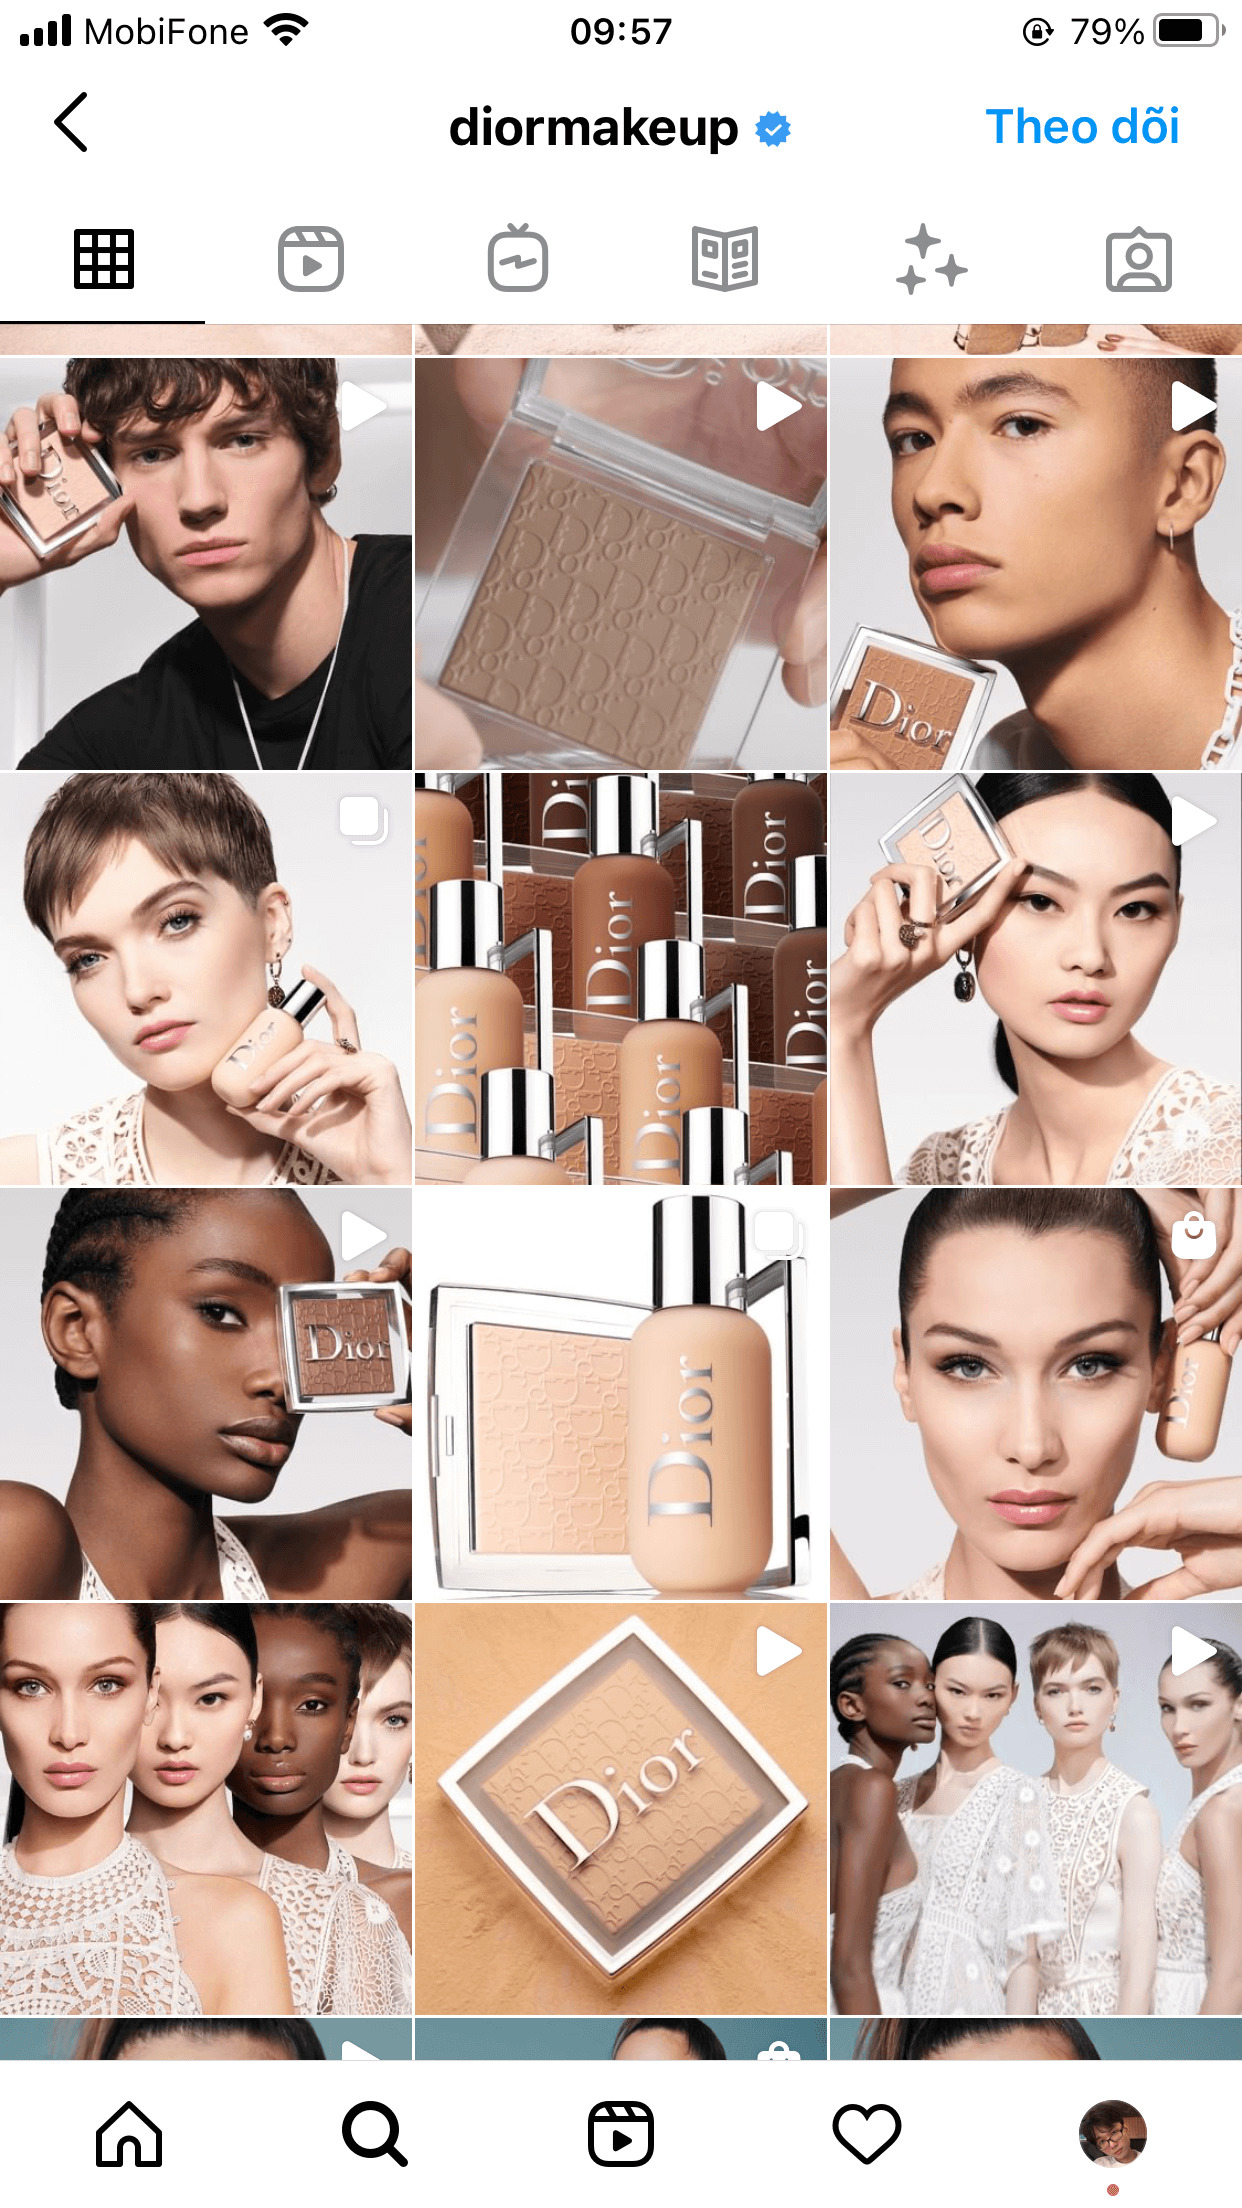 A beauty guru or not, one will be enraptured by this well-organized feed